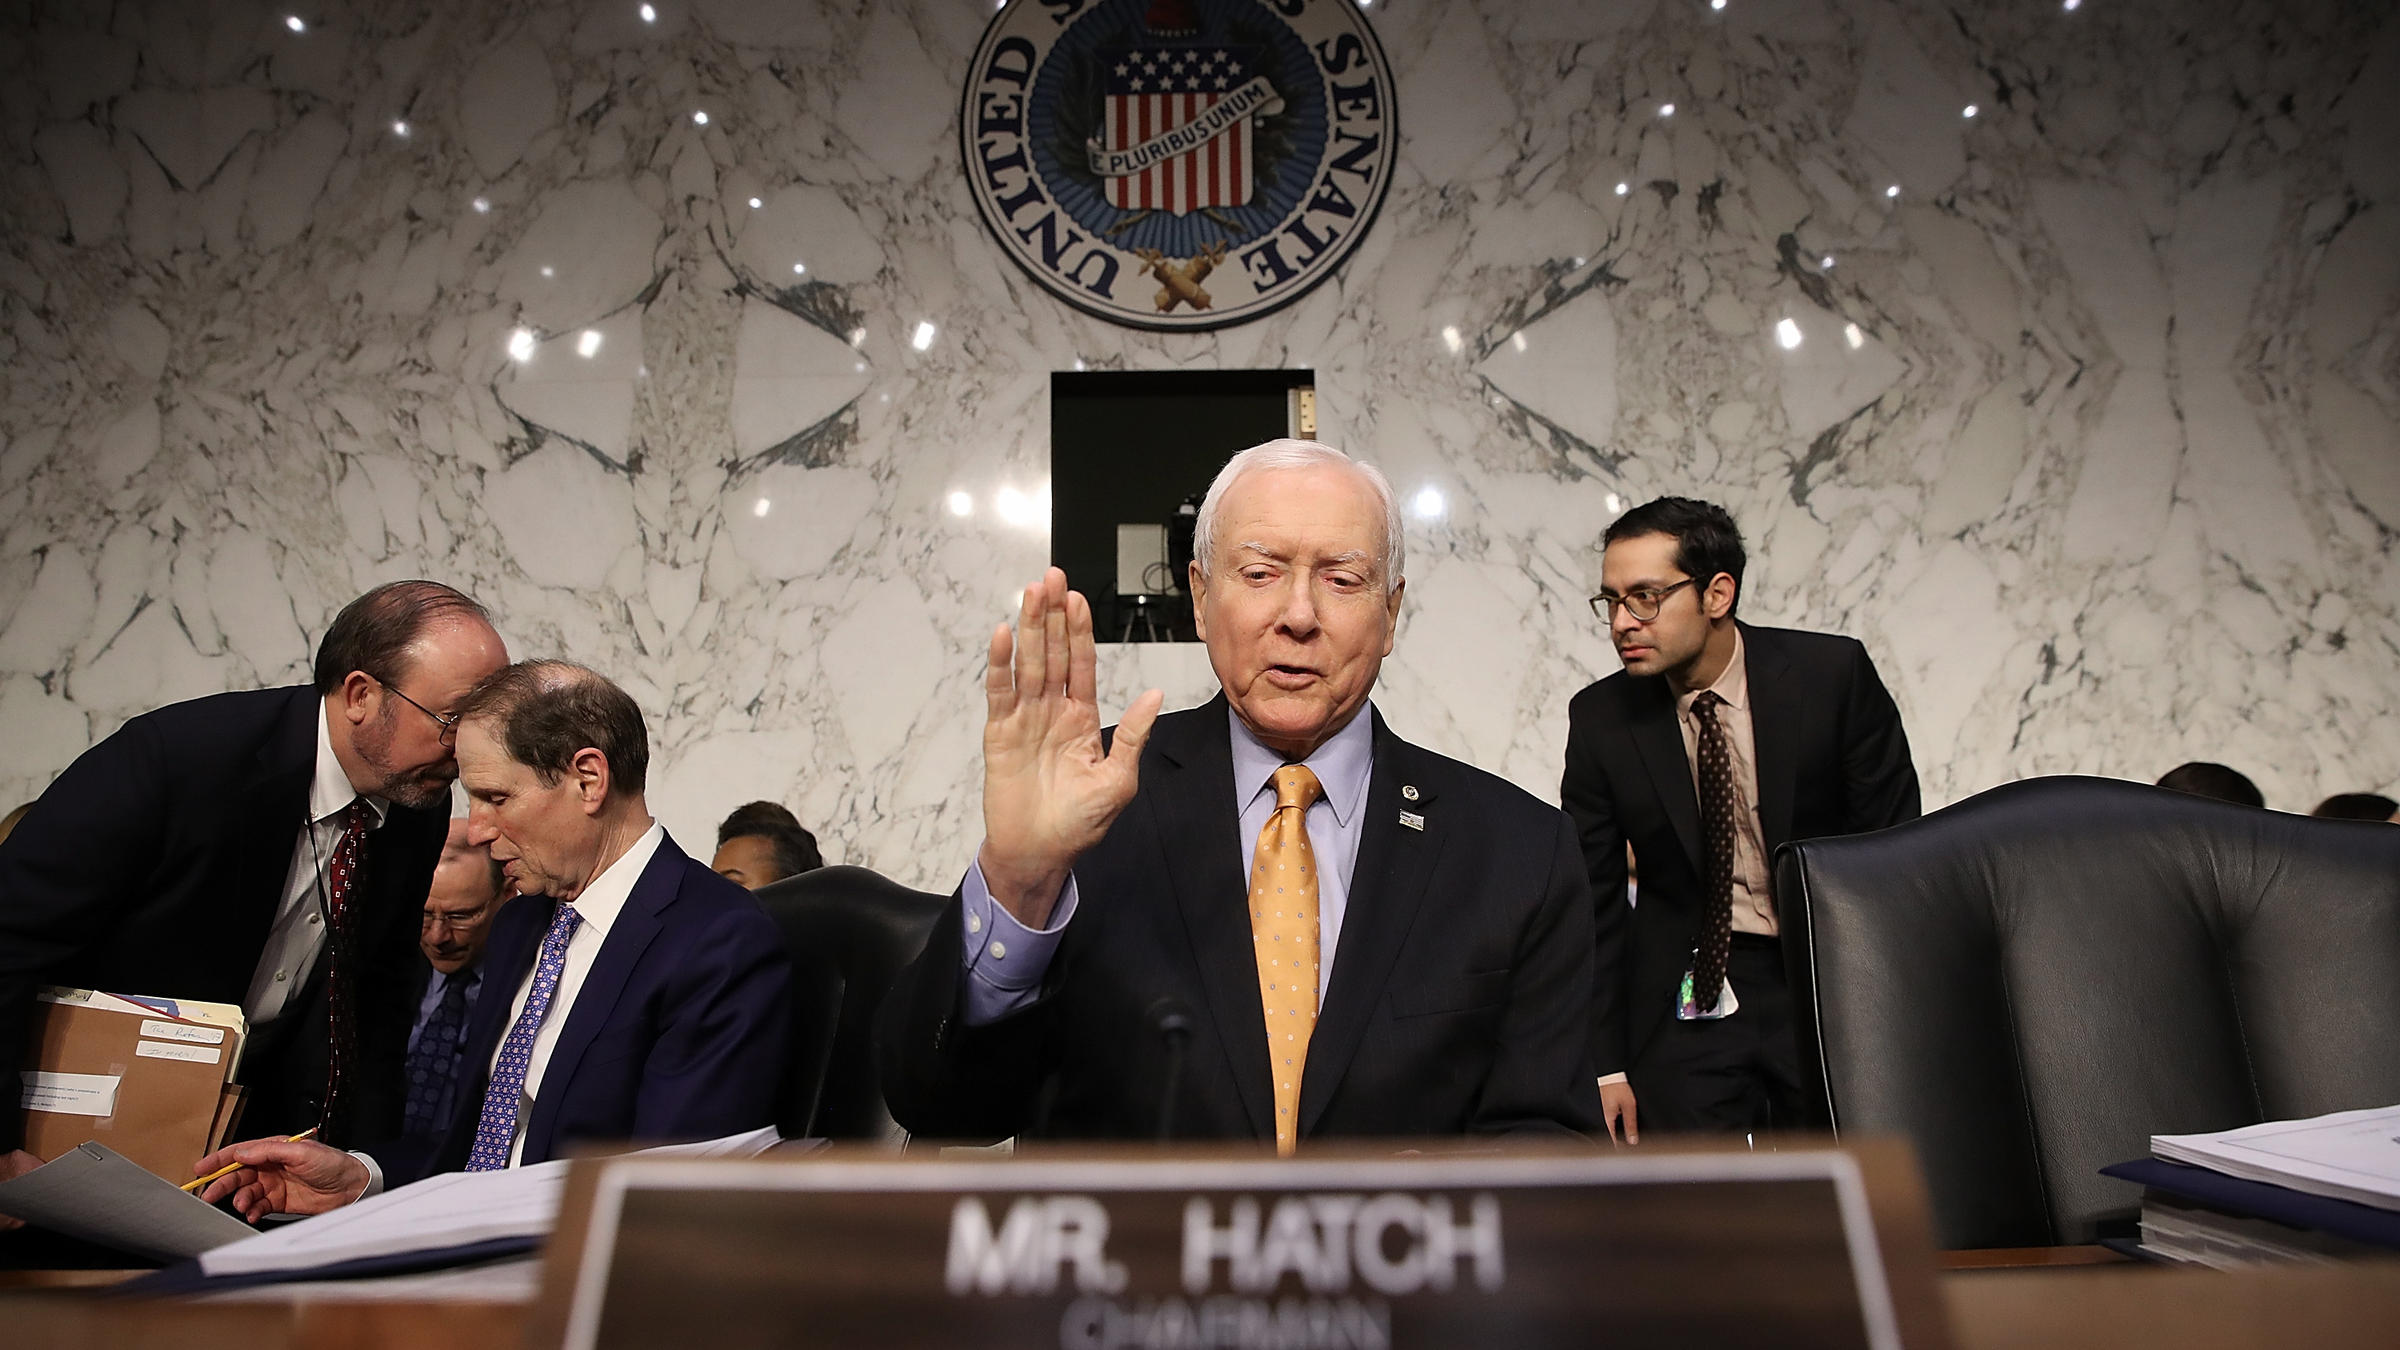 Orrin Hatch Says He's 'Grateful' for Biting Editorial That Suggested He Resign